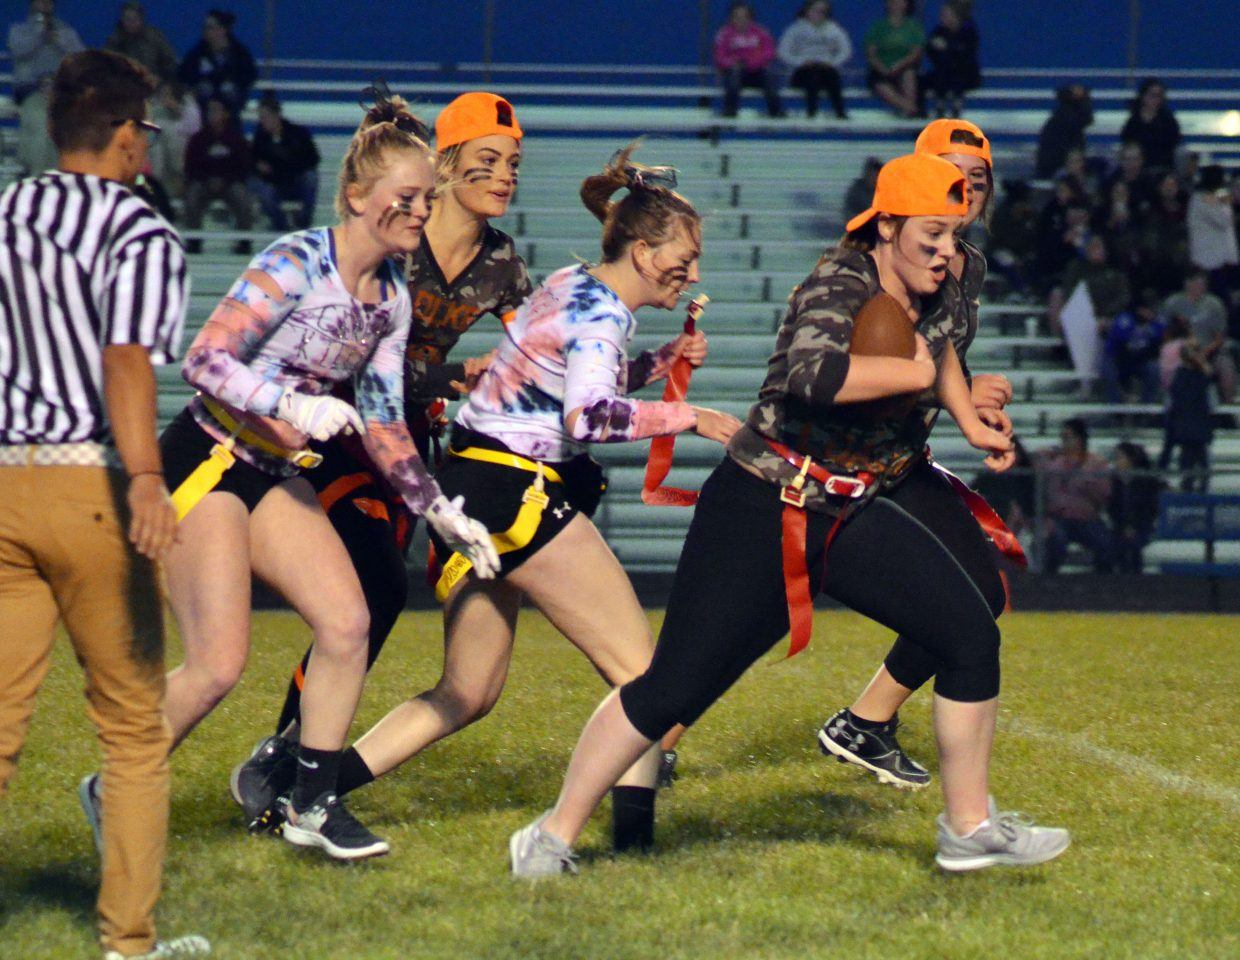 MaKala Herndon, of Locked & Loaded, keeps moving late in the game during Moffat County High School's Monday Powder Puff Football.